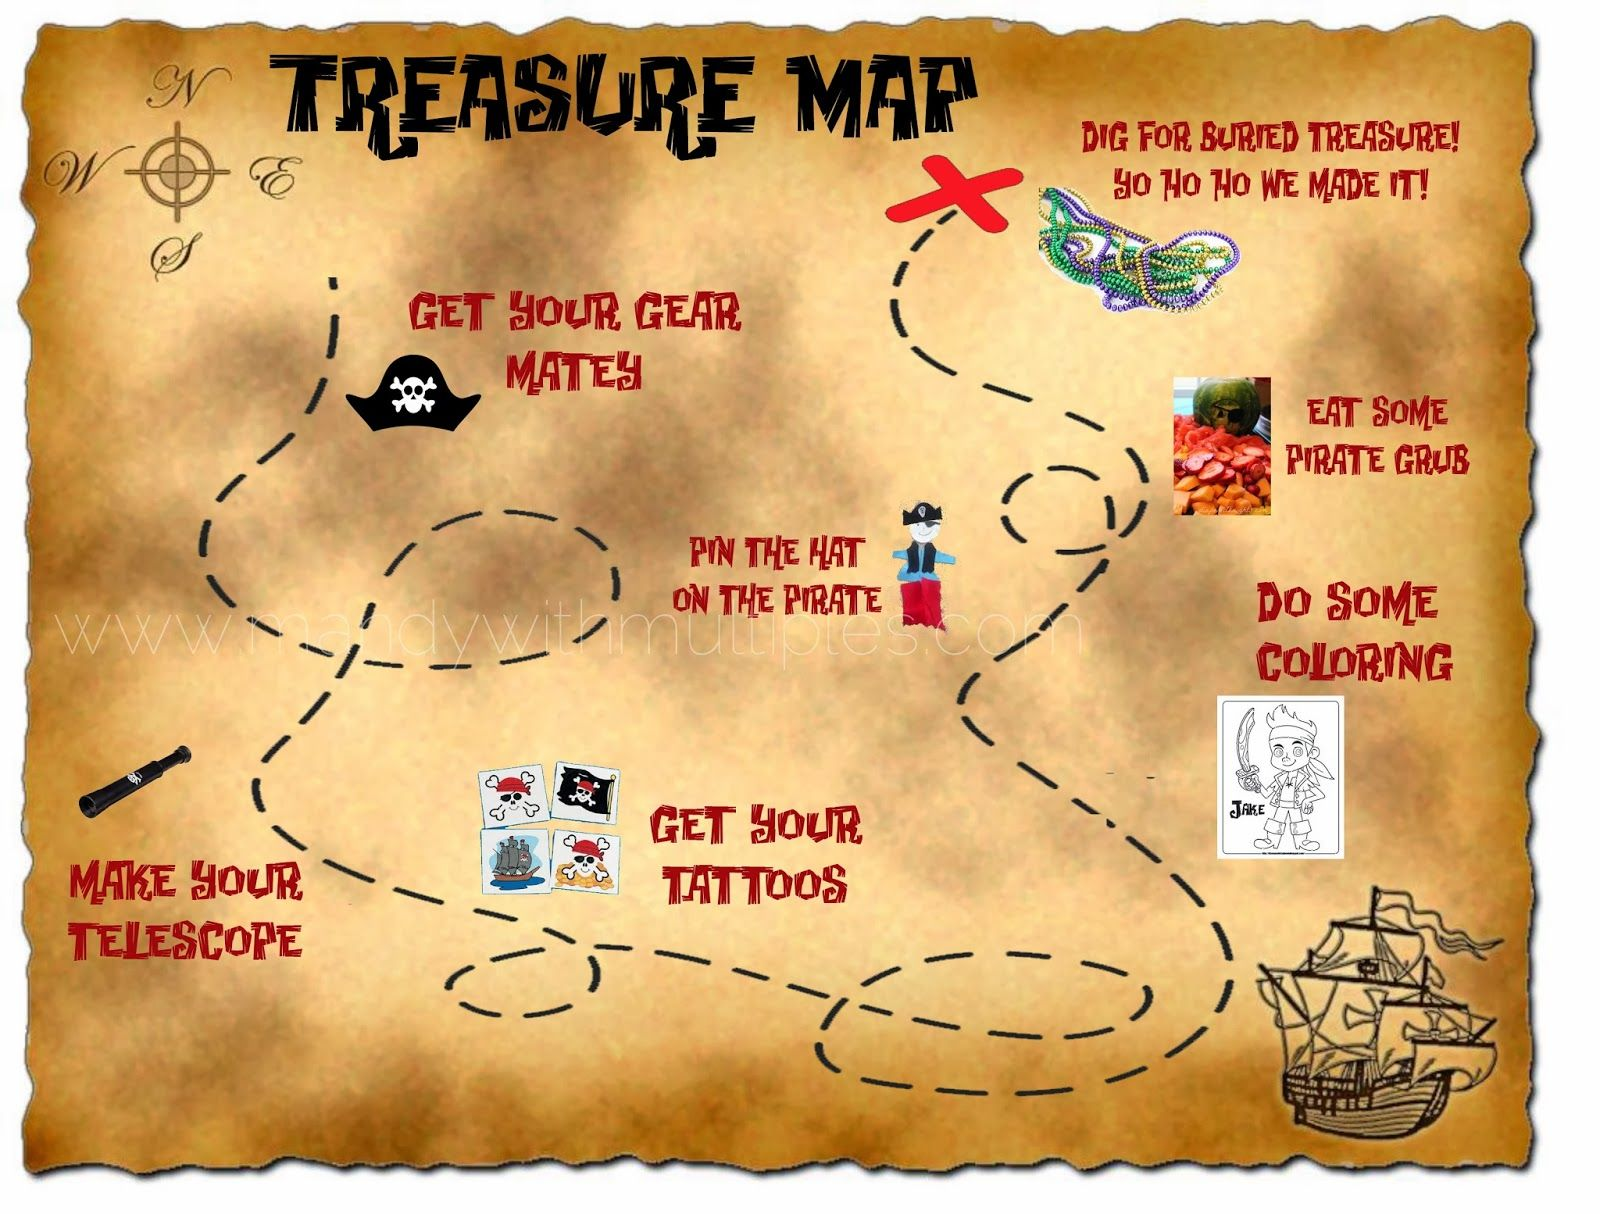 A Treasure Map That Is An Itinerary For The Party Love This I Believe